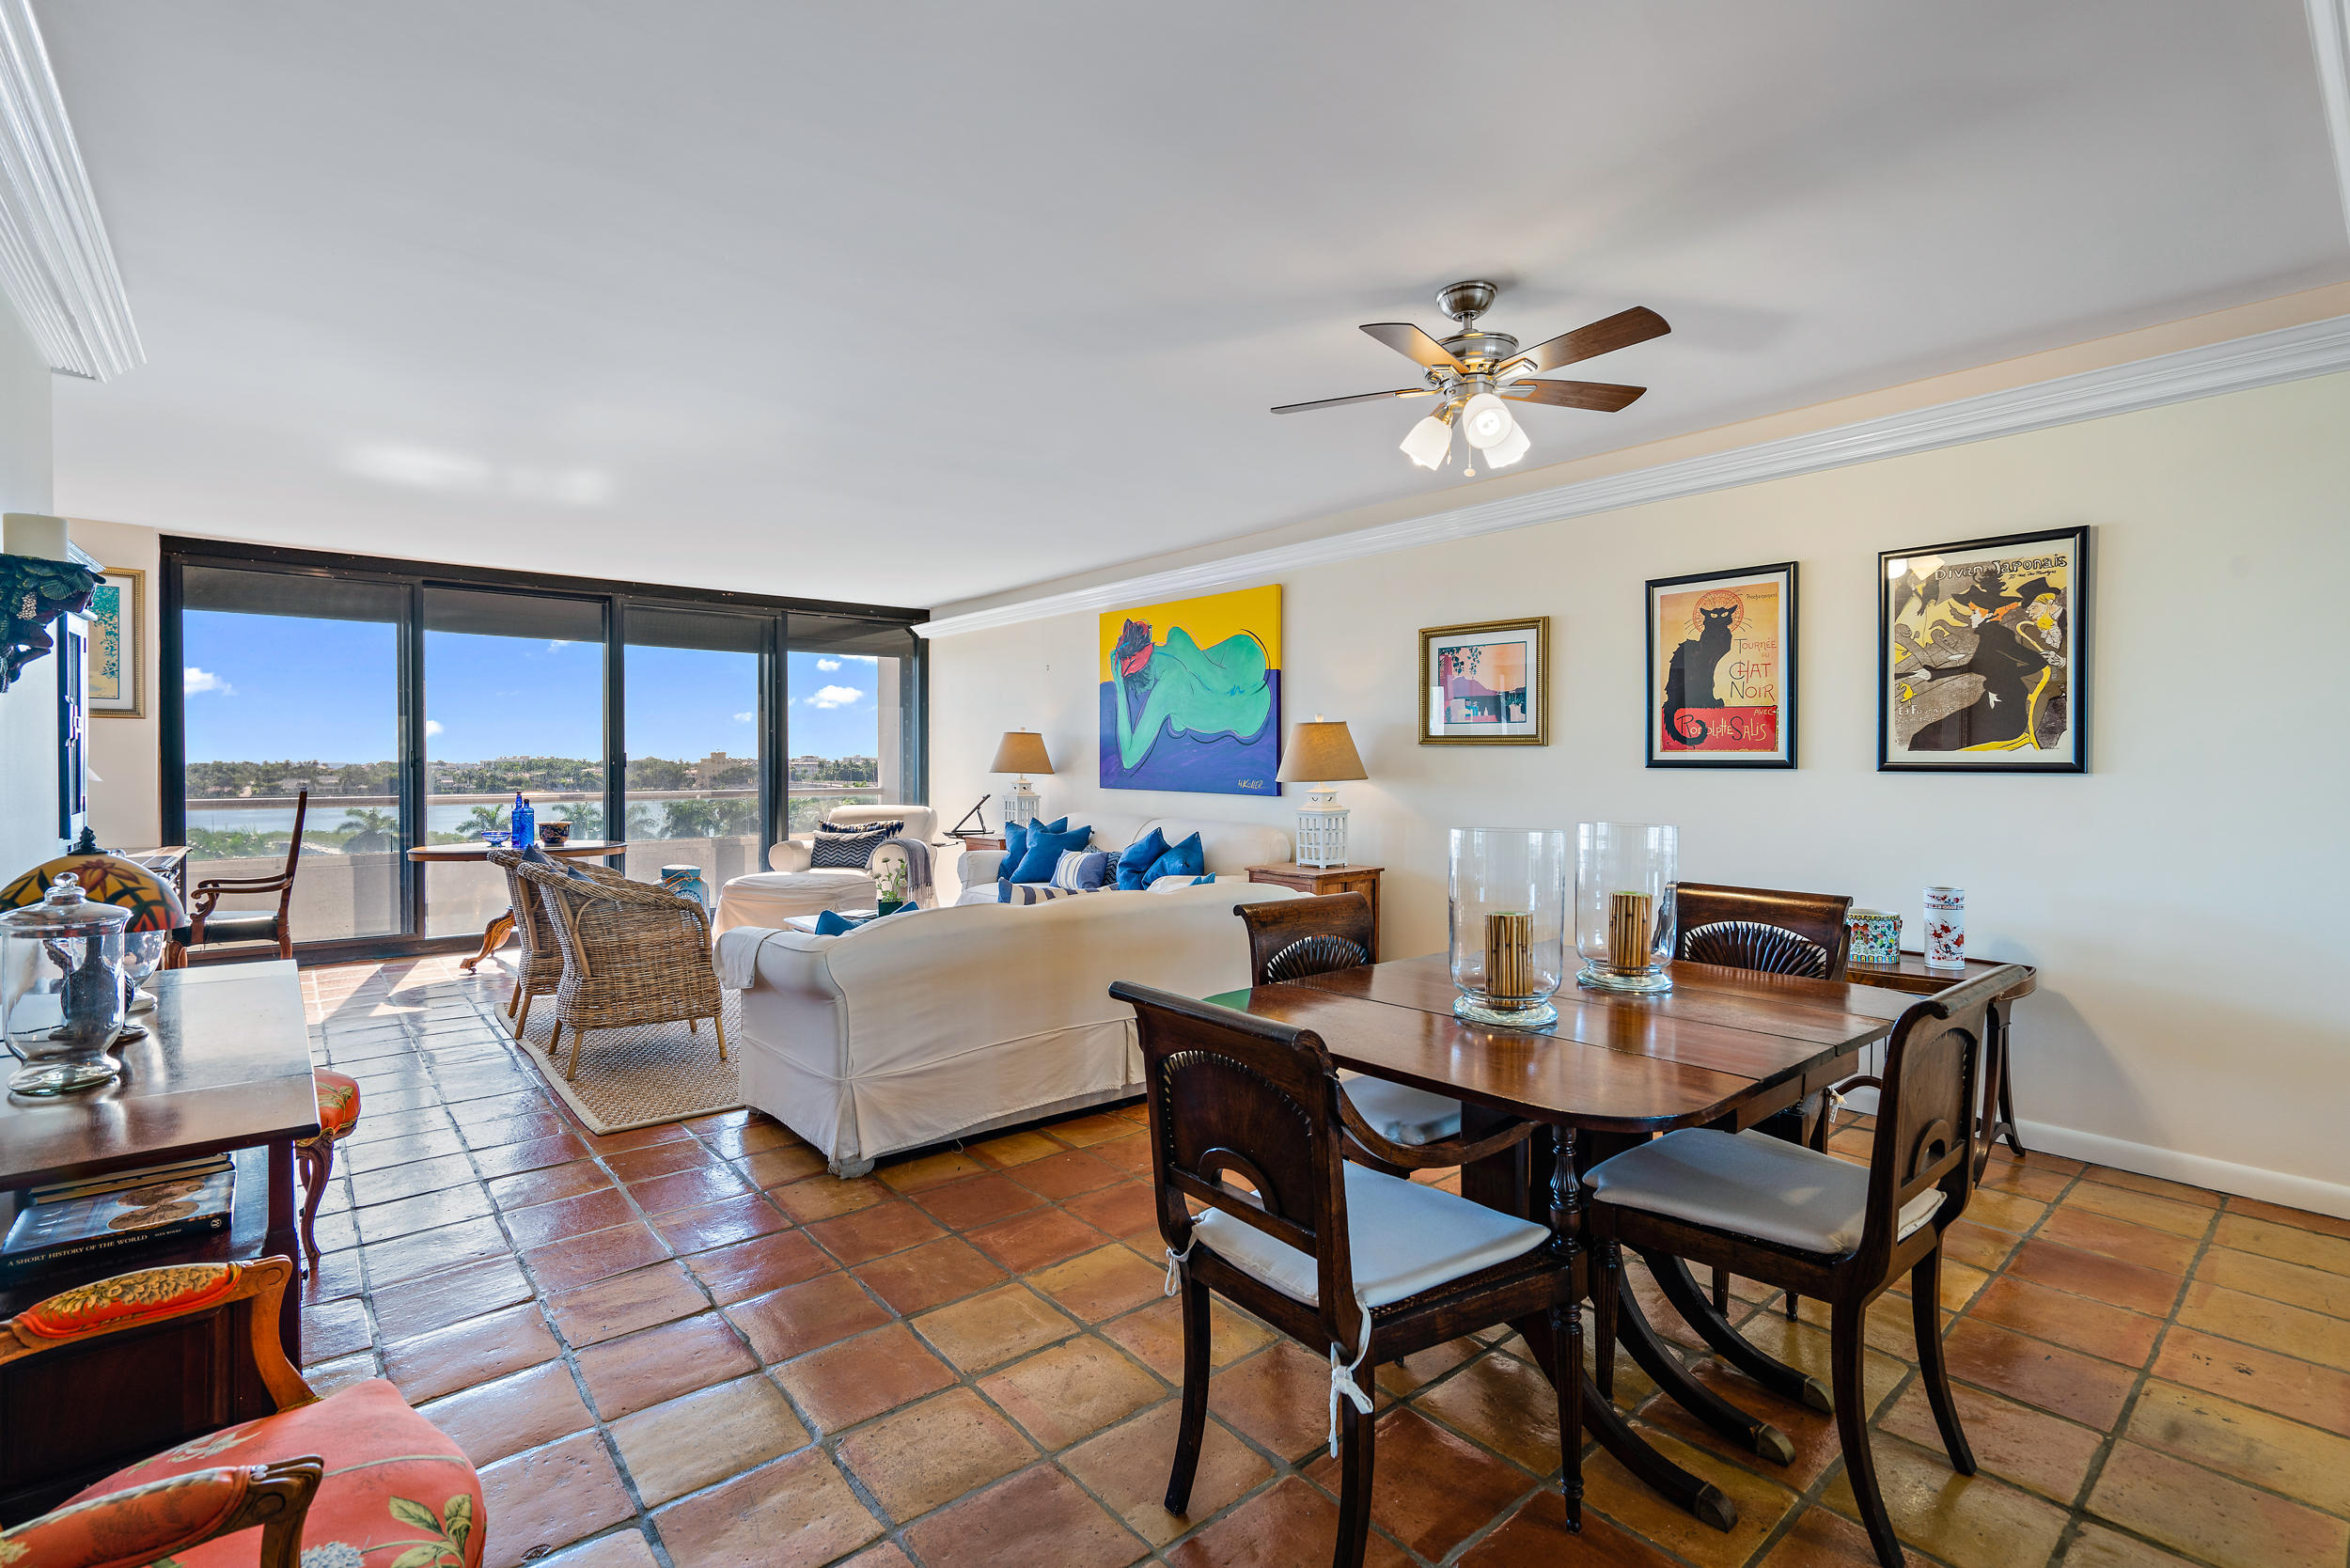 Home for sale in Trump Plaza West Palm Beach Florida